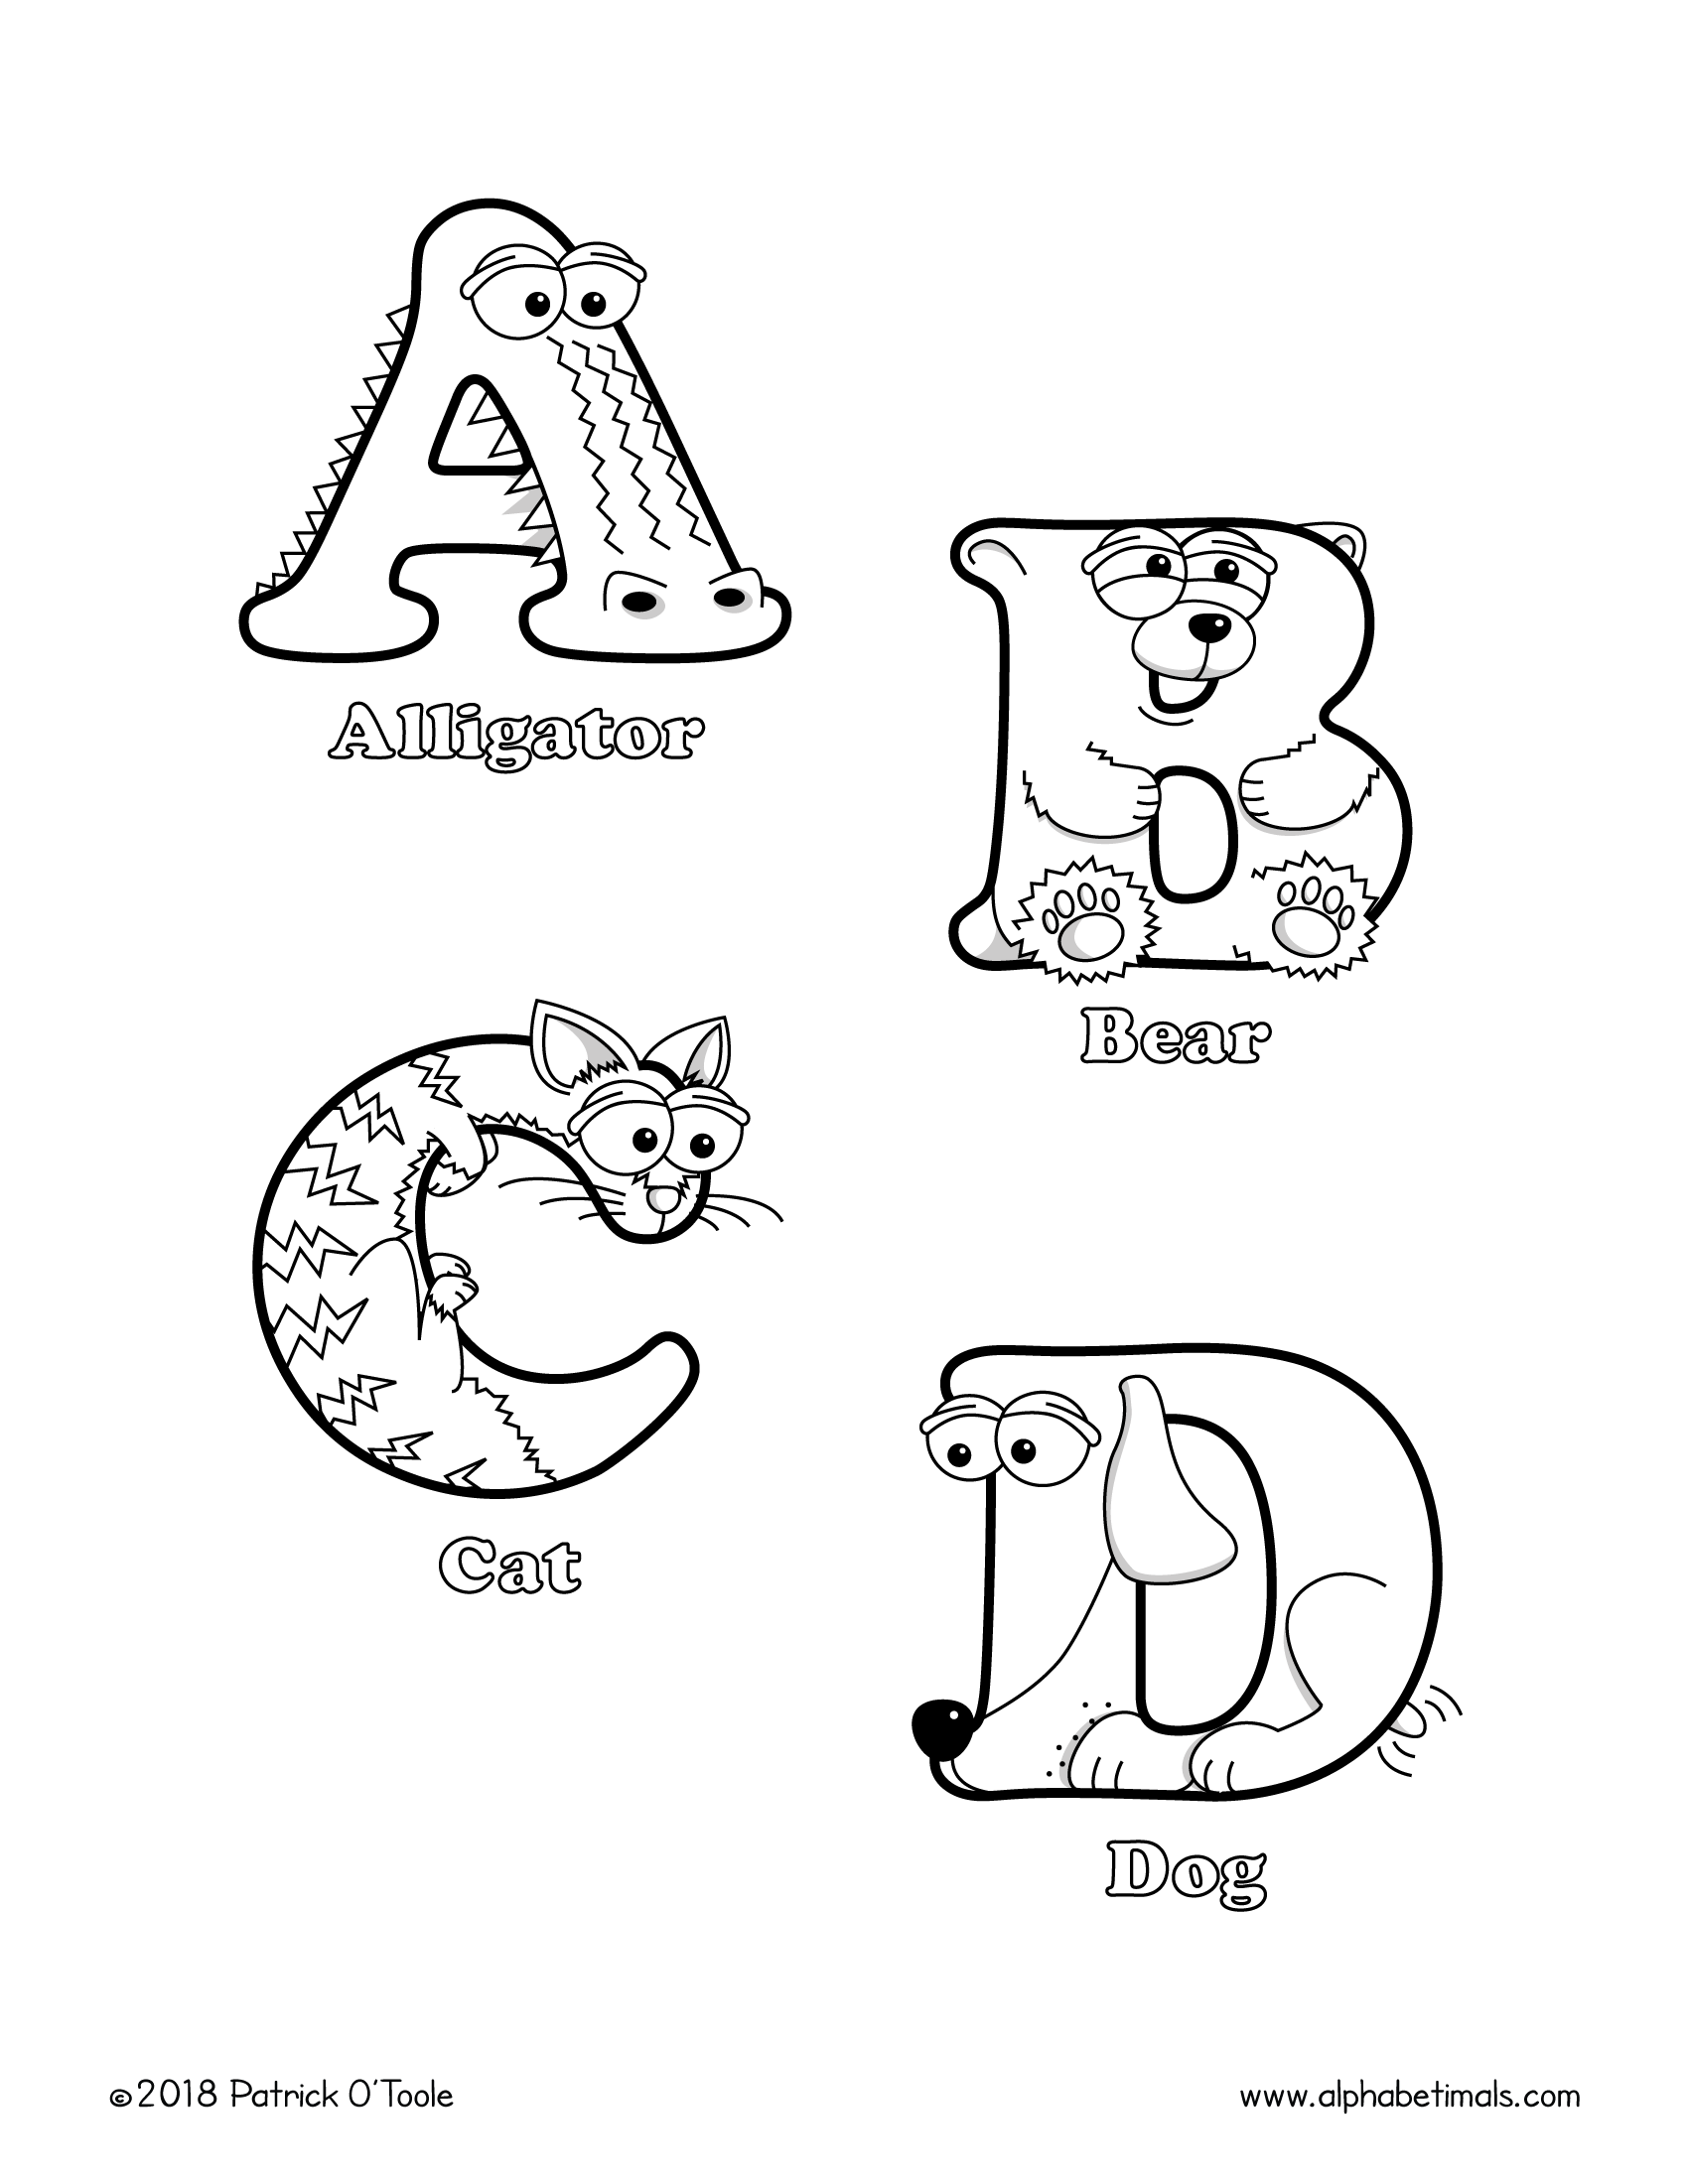 Teach Your Kids their ABCs the Easy Way With Free Printables | Alphabet coloring  pages, Letter a coloring pages, Printable coloring pages | 2200x1700